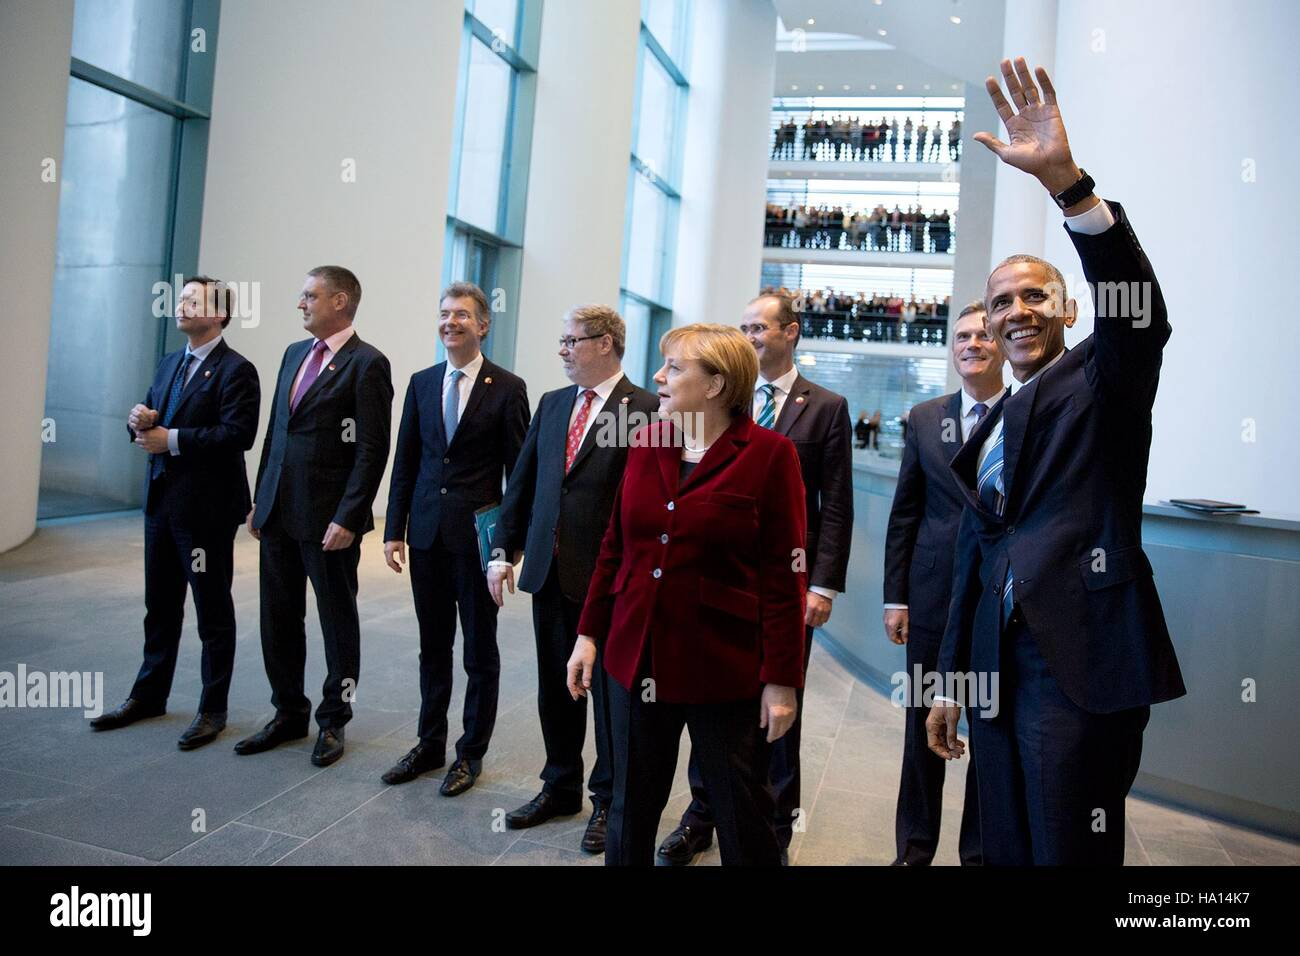 U.S. President Barack Obama waves to government workers alongside German Chancellor Angela Merkel and the German - Stock Image